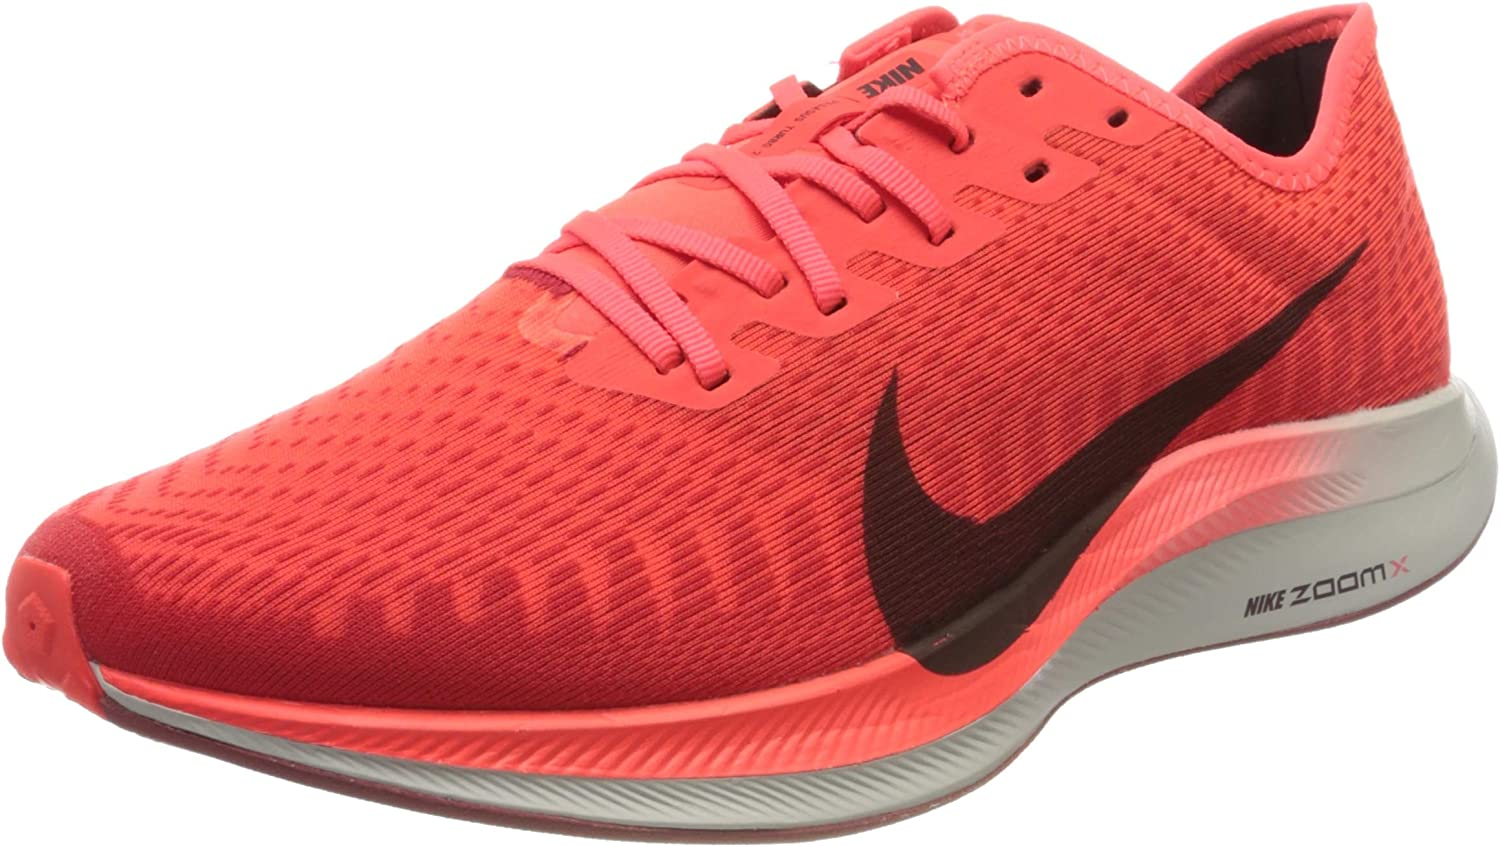 Nike Zoom Pegasus Turbo 2, Zapatillas de Trail Running para Hombre: Amazon.es: Zapatos y complementos